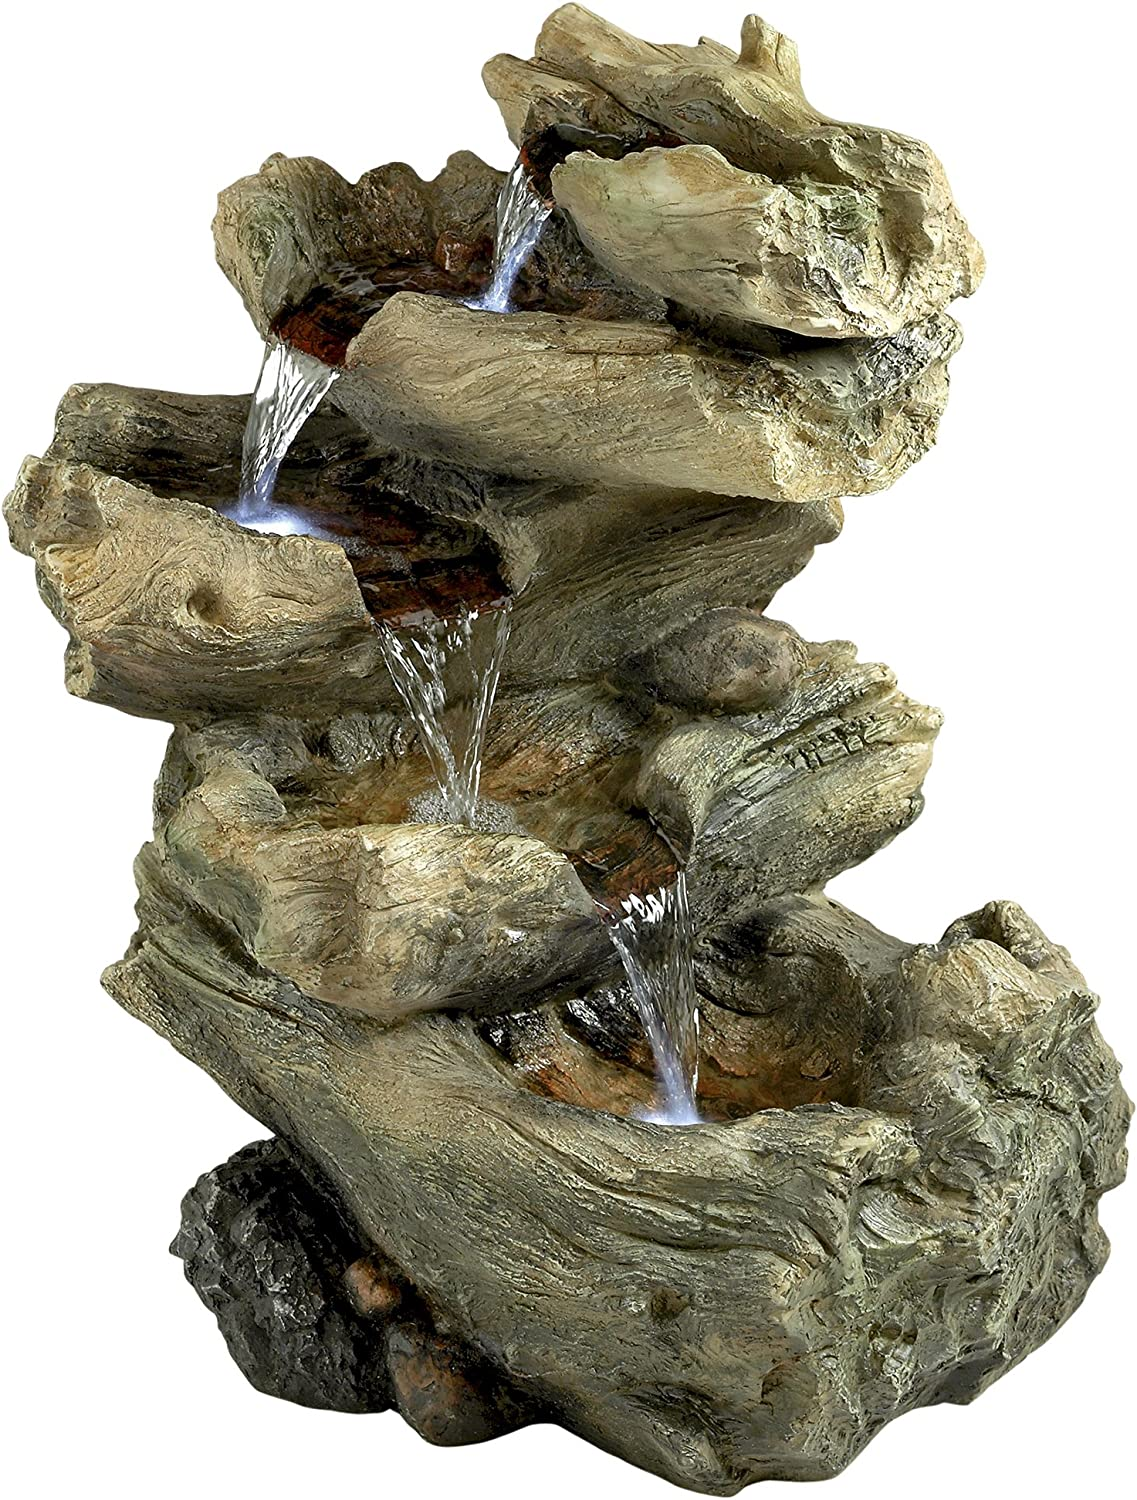 Water Fountain with LED Light - Roaring River Garden Decor Fountain - Outdoor Water Feature